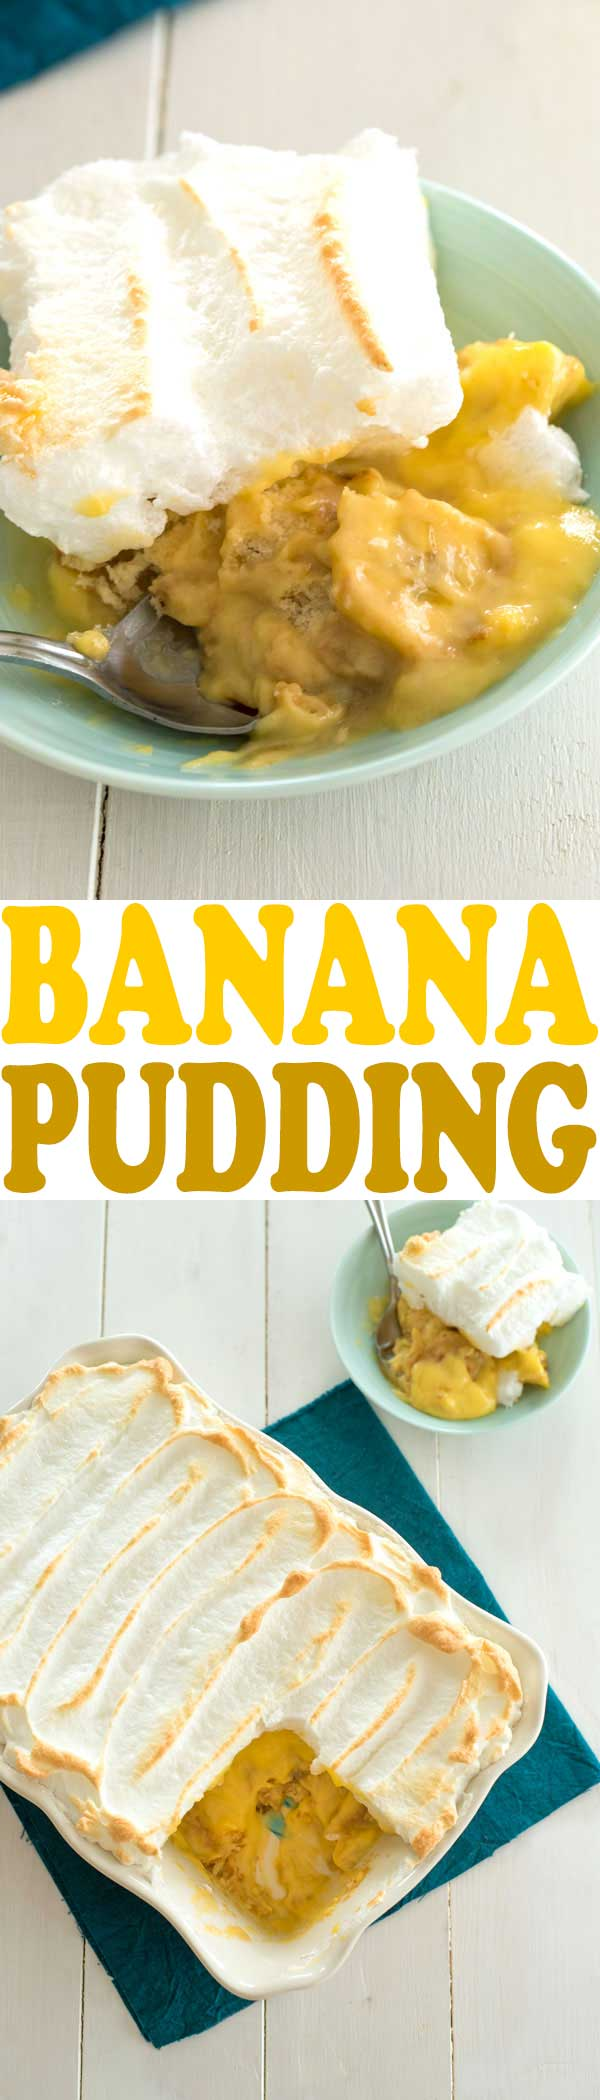 The BEST easy homemade Banana Pudding FROM SCRATCH! This old fashioned southern dessert recipe has a meringue topping and Nilla wafers!